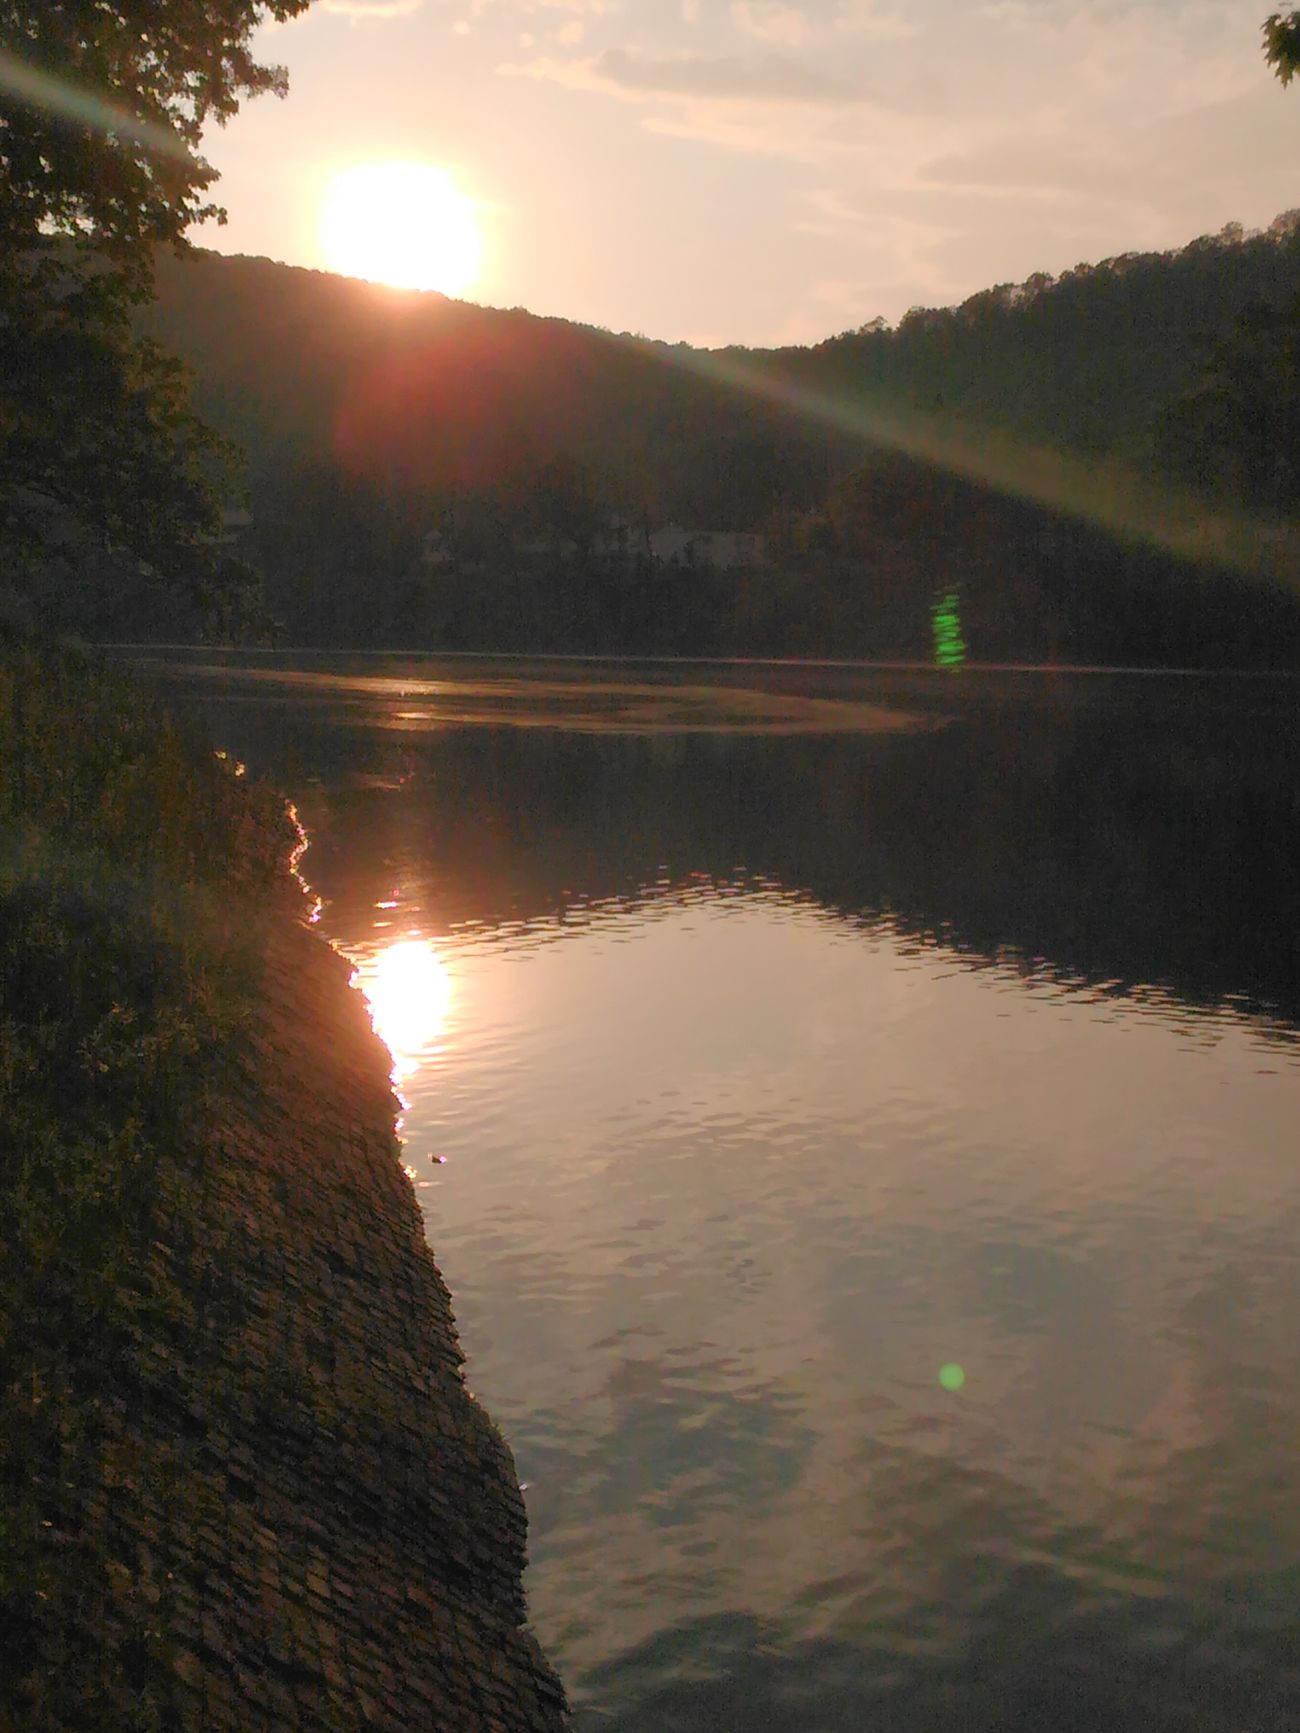 Sunset for a sat night may 28 Check This Out Sunshine Allegheny River Sunrays Sawonmyadventure Taking Photos Very Inspired By My Muse Beautiful Sunset Beautiful View